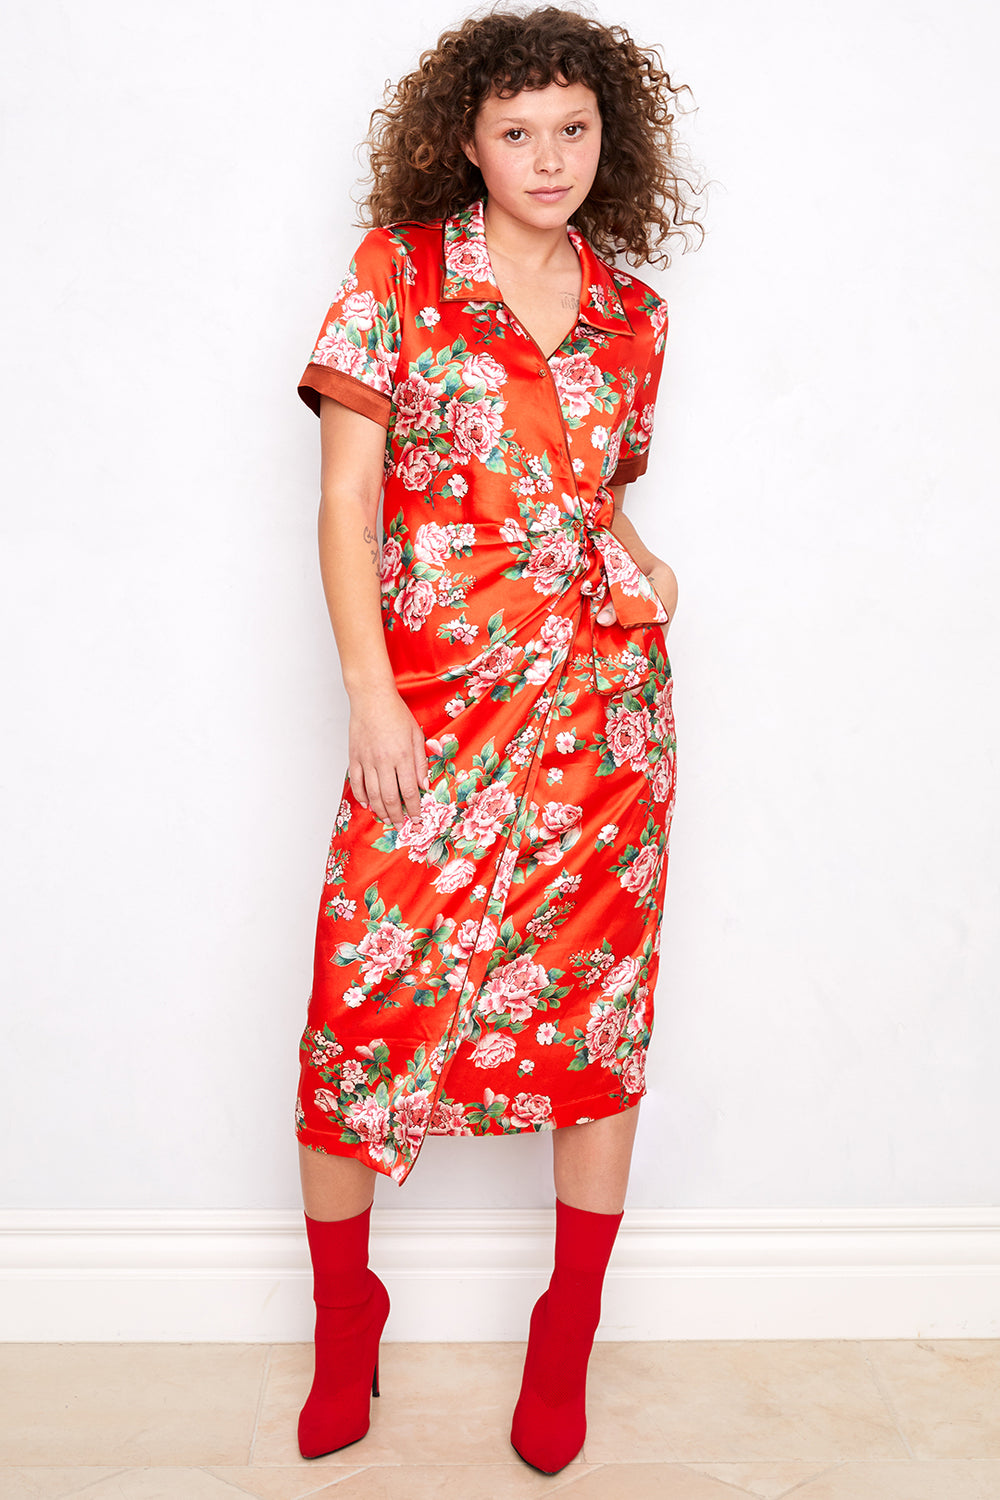 Perfectly Taylored Dress | SHAHbby Floral